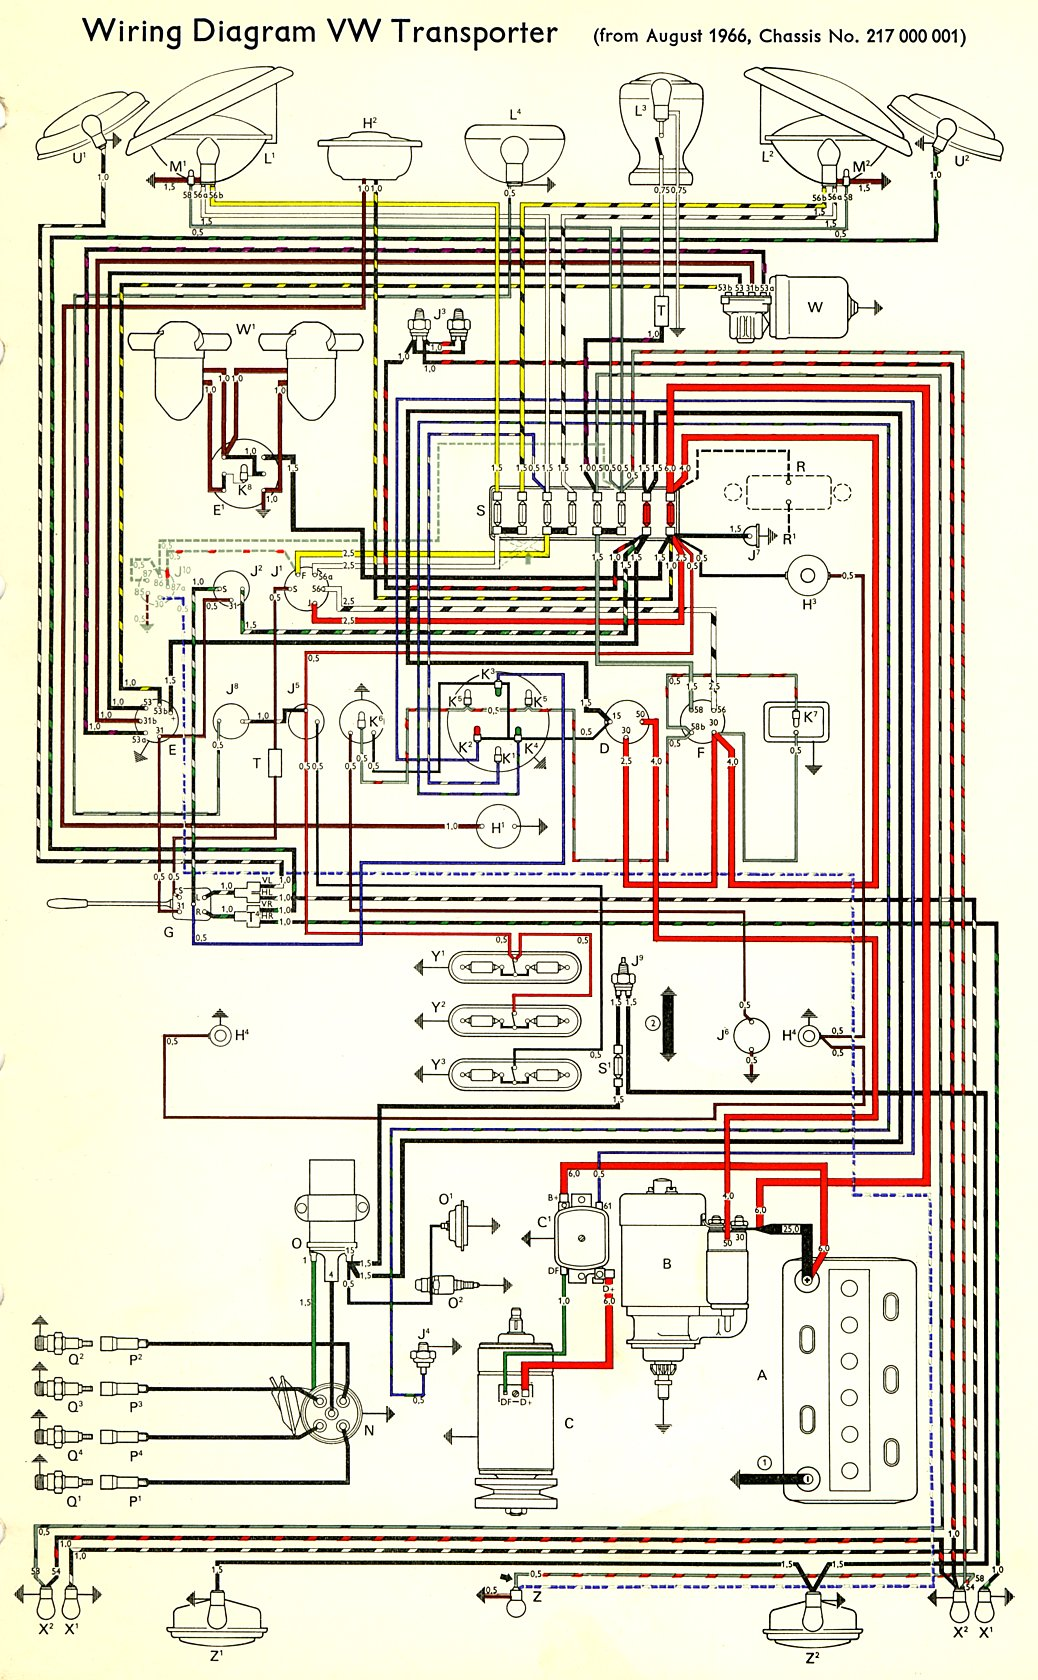 bus_67 vw bus wiring diagram 1965 vw bus wiring diagram \u2022 wiring diagrams 1971 karmann ghia wiring diagram at webbmarketing.co